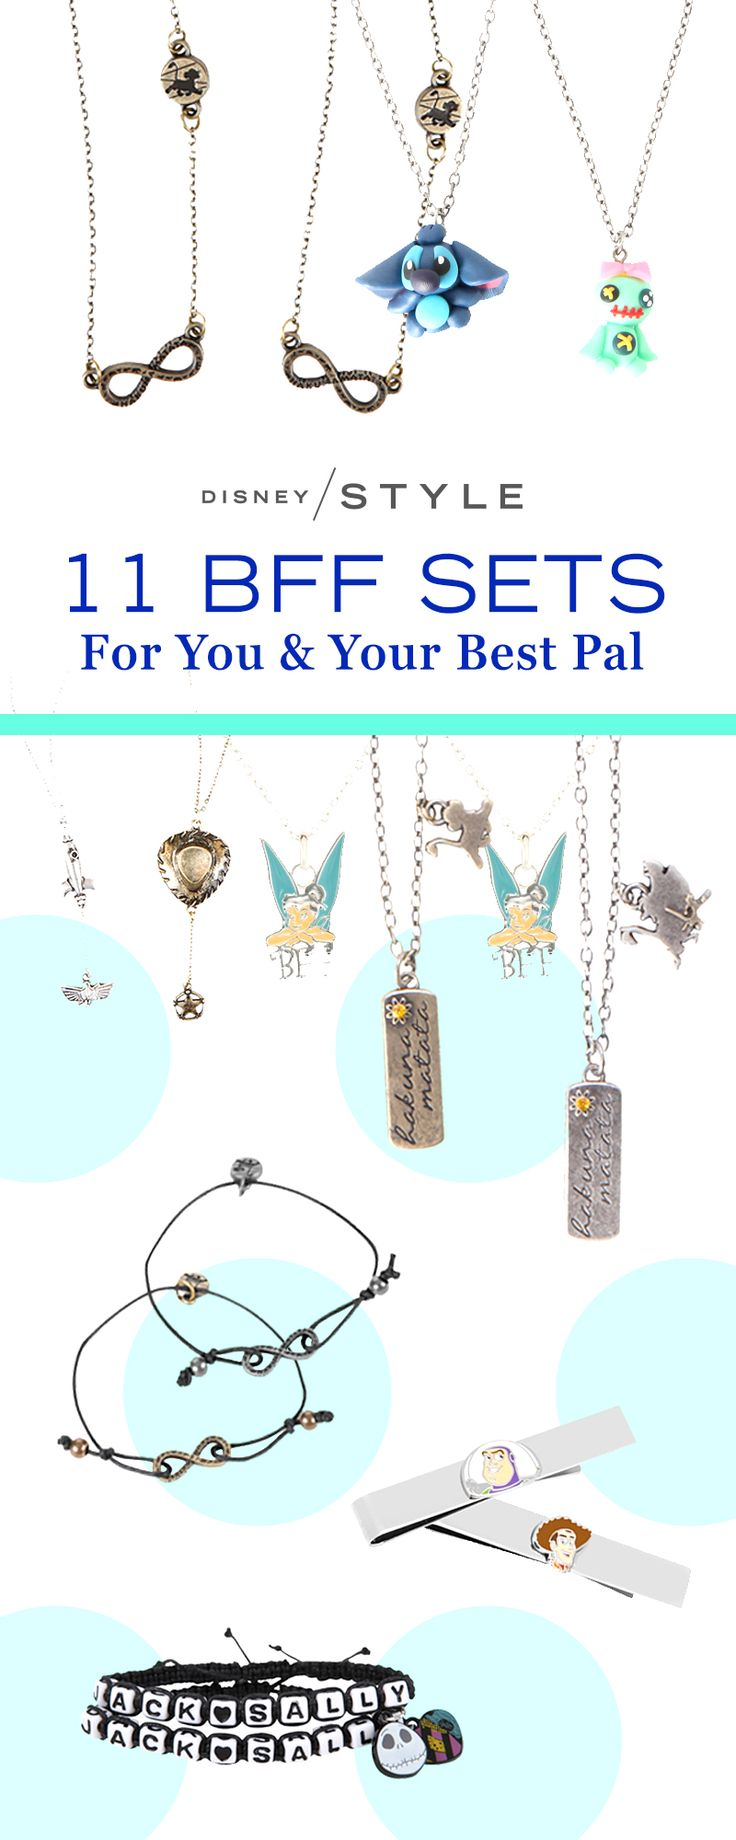 11 BFF sets for the Timon to your Pumbaa or Buzz to your Woody! | Disney lover's jewelry. | [ http://blogs.disney.com/disney-style/fashion/2016/03/10/11-things-for-your-disney-bff/#the-lion-king-infinity-necklace-set ]